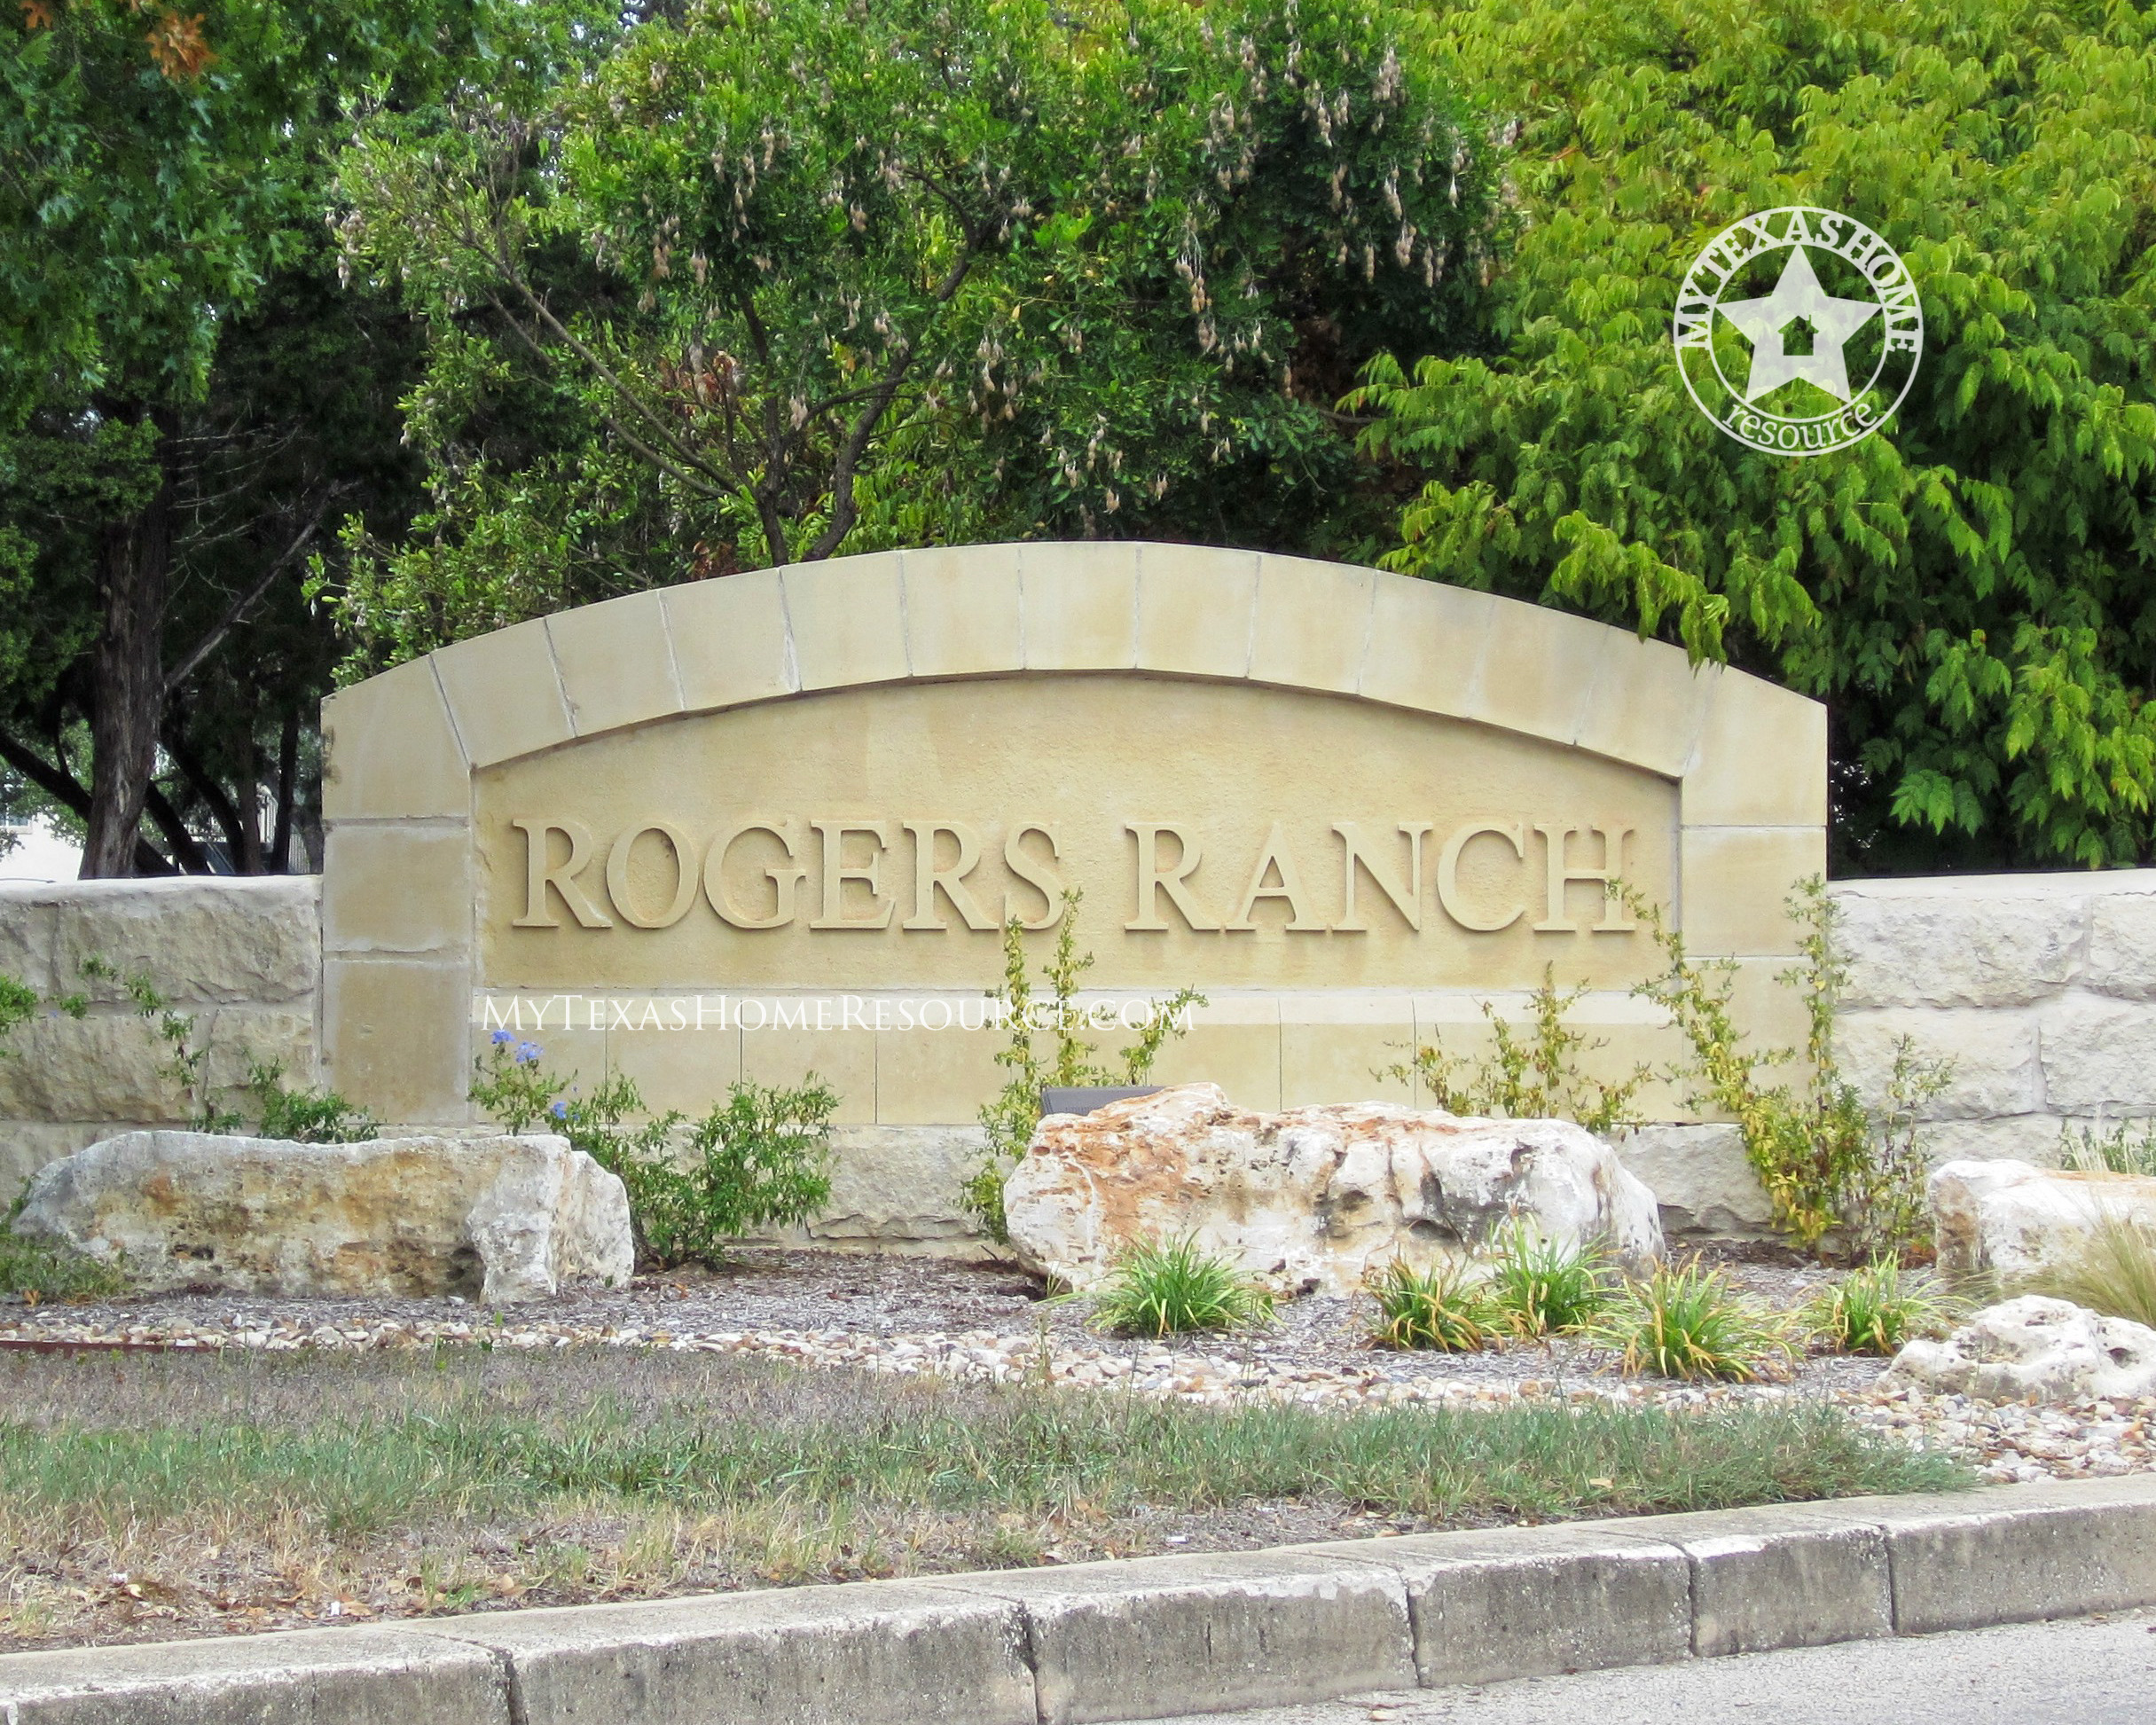 Rogers Ranch Community